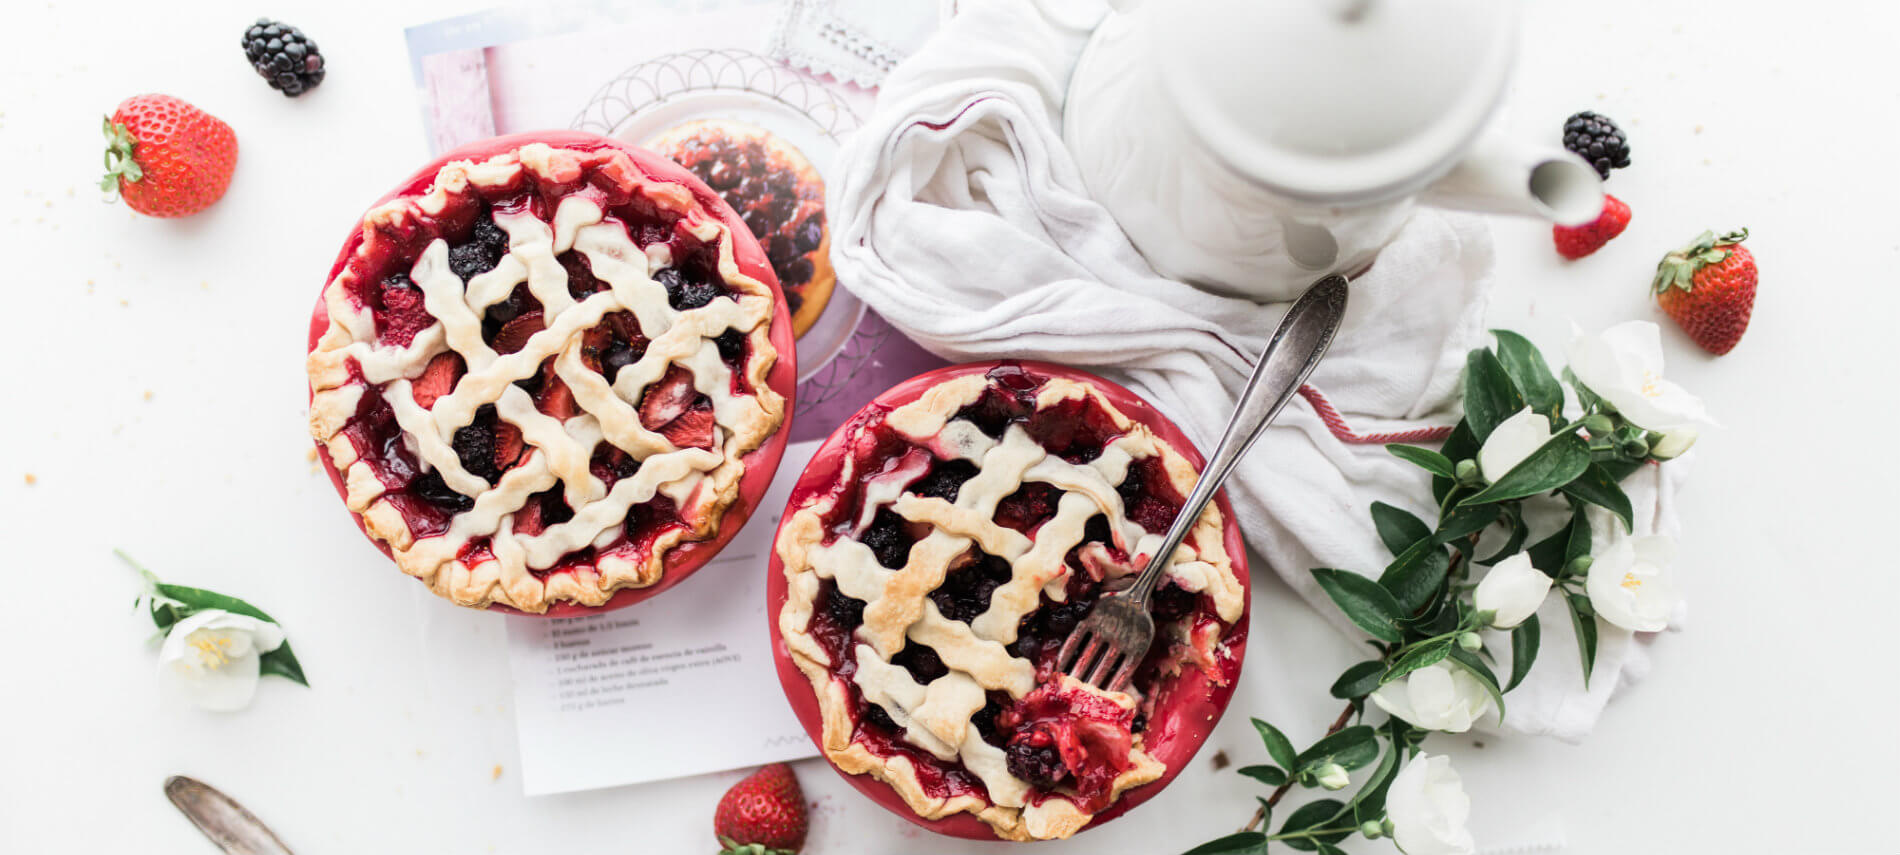 Table with two personal sized berry pies, white carafe, printed recipe, white towel, surrounded by fresh berries and flowers